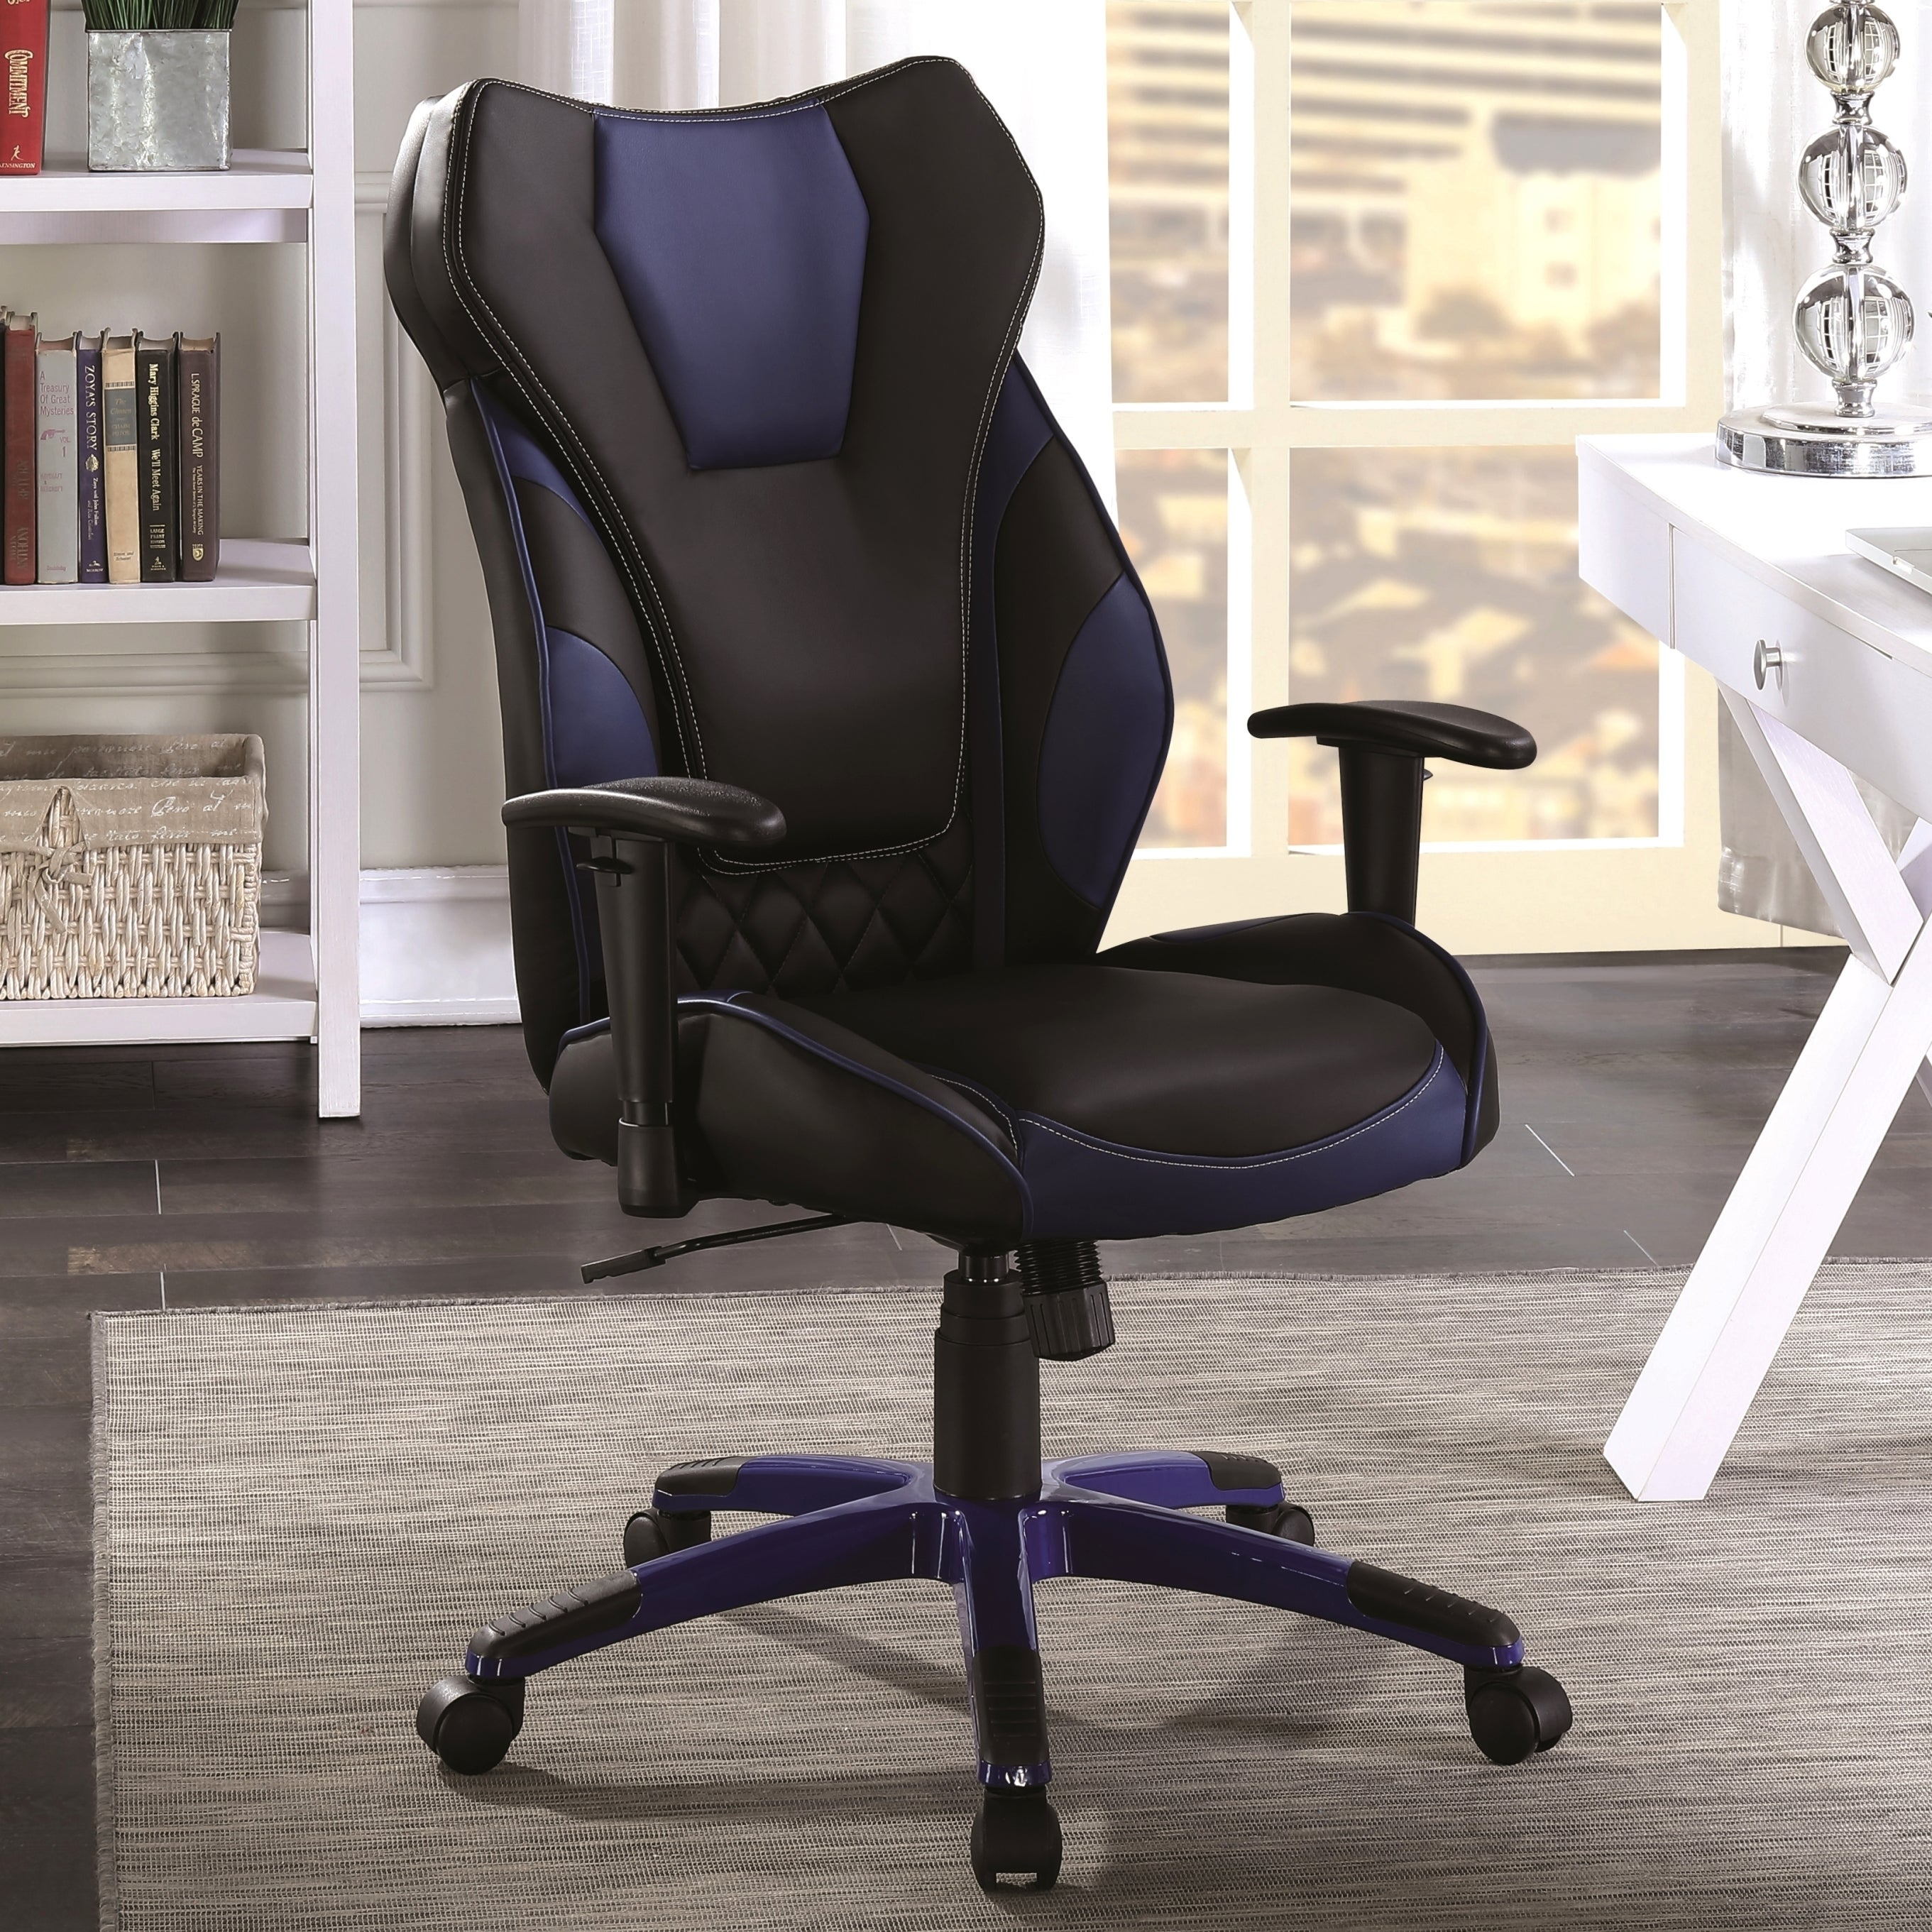 Amazing Racer Design Black Blue Ergonomic Gaming Home Office Chair Uwap Interior Chair Design Uwaporg